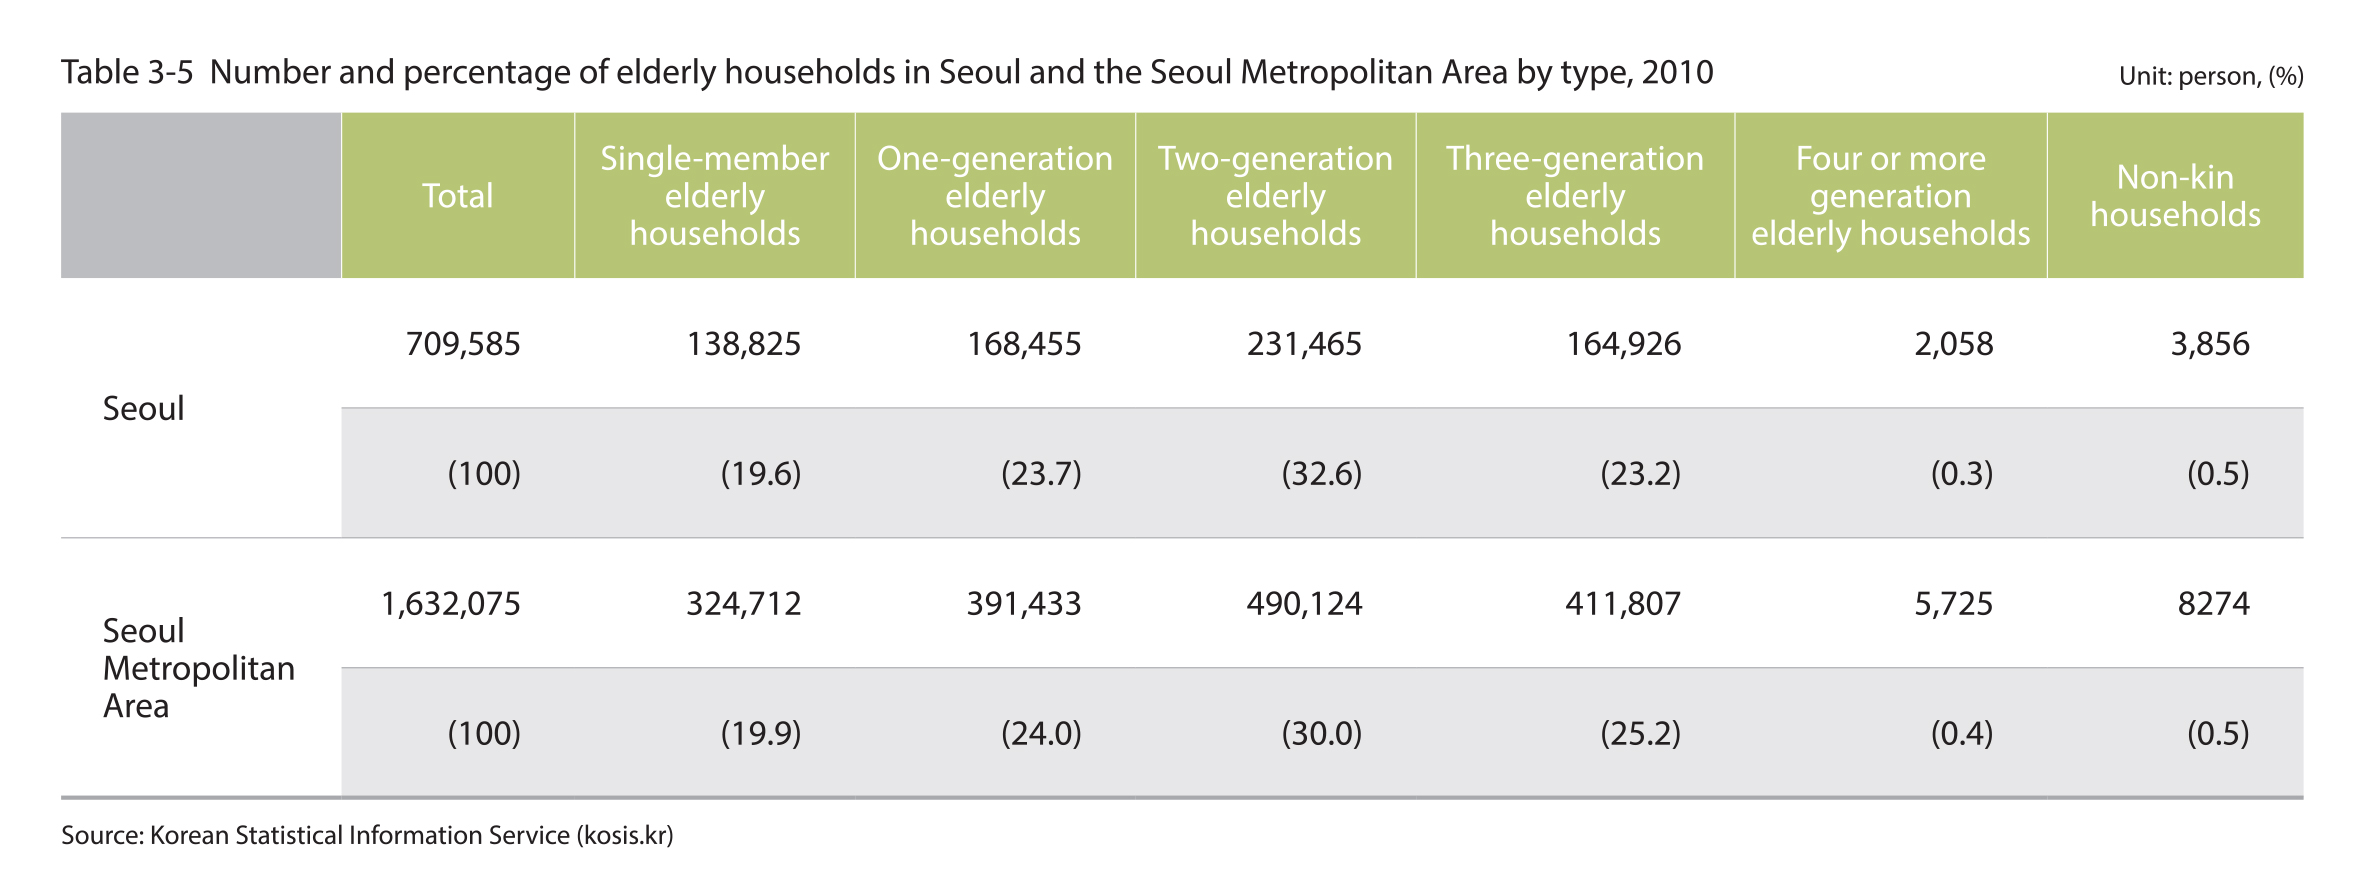 Number and percentage of the elderly household in Seoul and the Seoul Metropolitan Area by type, 2010